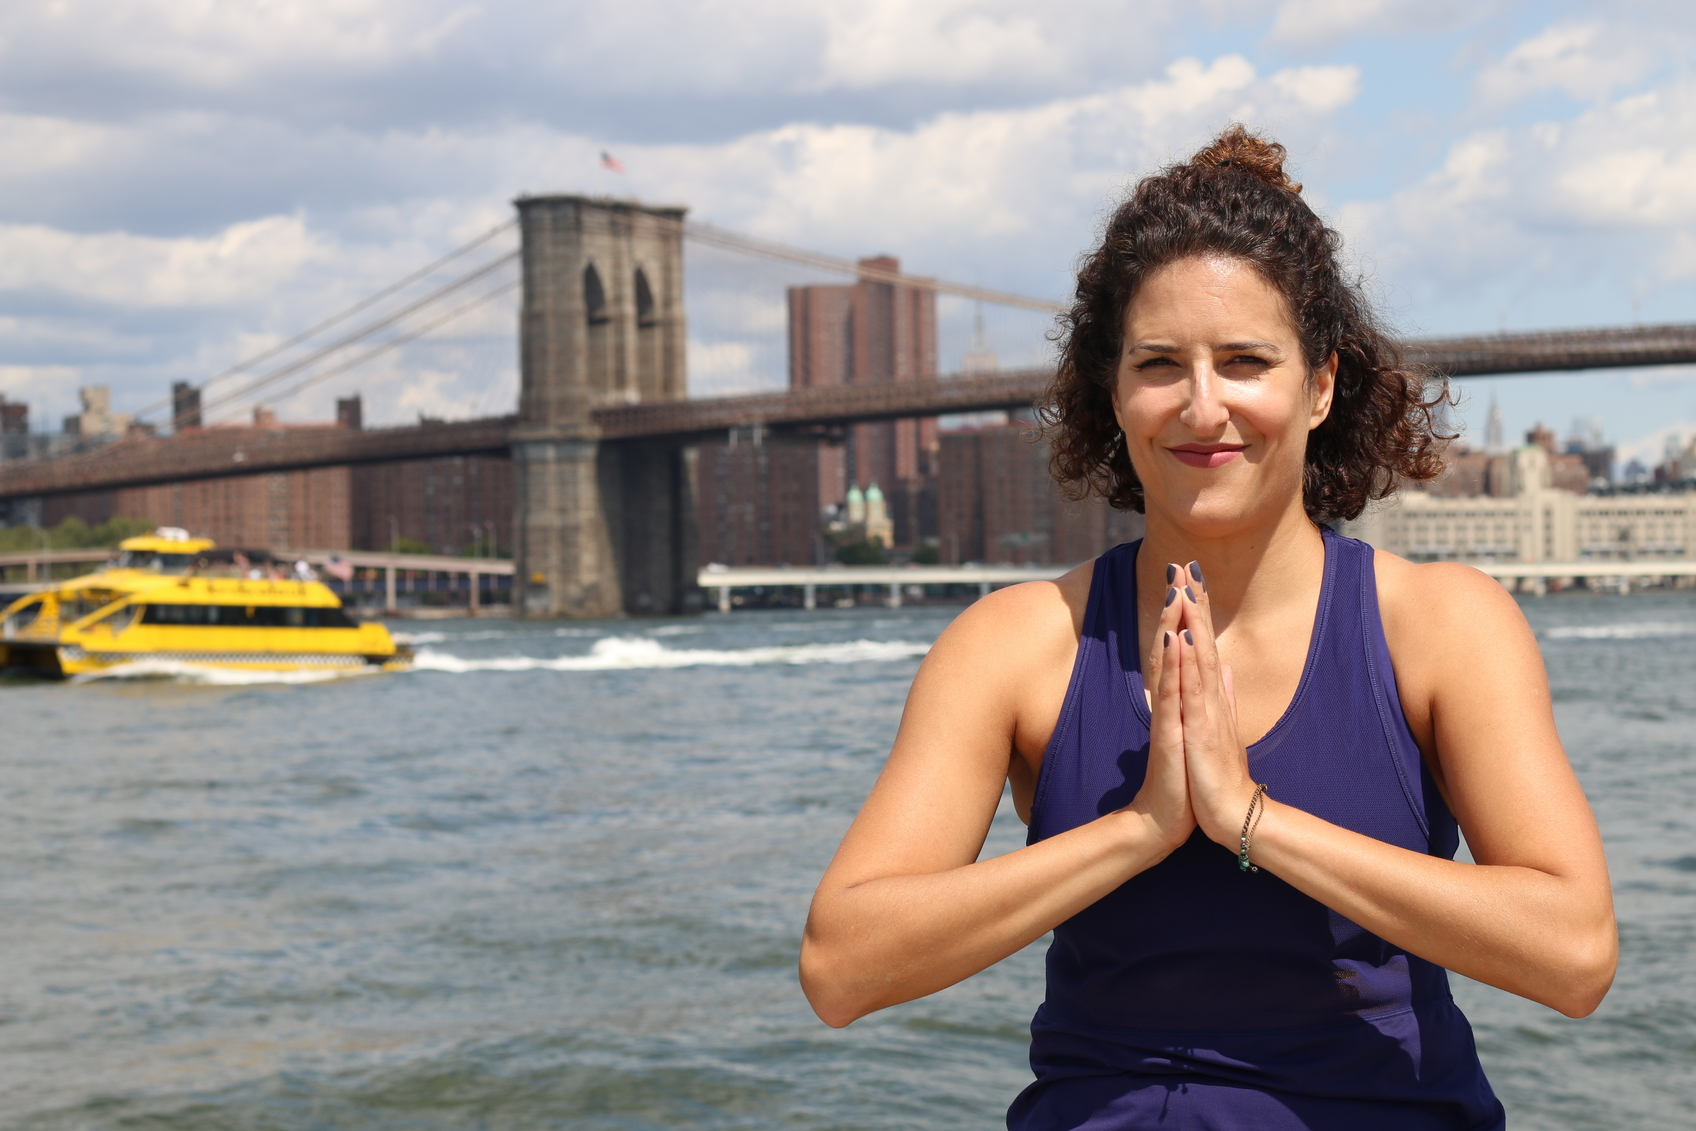 HELLO I'M ALEX... - A NYC-based British yogi developing bespoke yoga FOR CYCLISTS workshops launchING Spring 2018.  I've been practicing yoga for over 17 years and recently completed my 200 hour yoga teacher training at YogaWorks New York. Restorative yoga is my passion; using the breath, gravity and props to allow the body to heal itself.I started road cycling several years ago and fell in love with riding, setting up SpokeNYC as an informal cycling crew, exploring the city and local events.The more I ride, the more I realize the links between cycling and yoga: feeling the experience through the earth (mind), focussing the core and legs to perform (body) and getting into the flow (spirit). There are huge benefits to exploring the connection between these two amazing experiences, not least the physical benefits but also the mental ones.This space is a place to celebrate the union between yoga and cycling. I offer it to help your practice and improve your ride.To host or attend a workshop please get in touch.